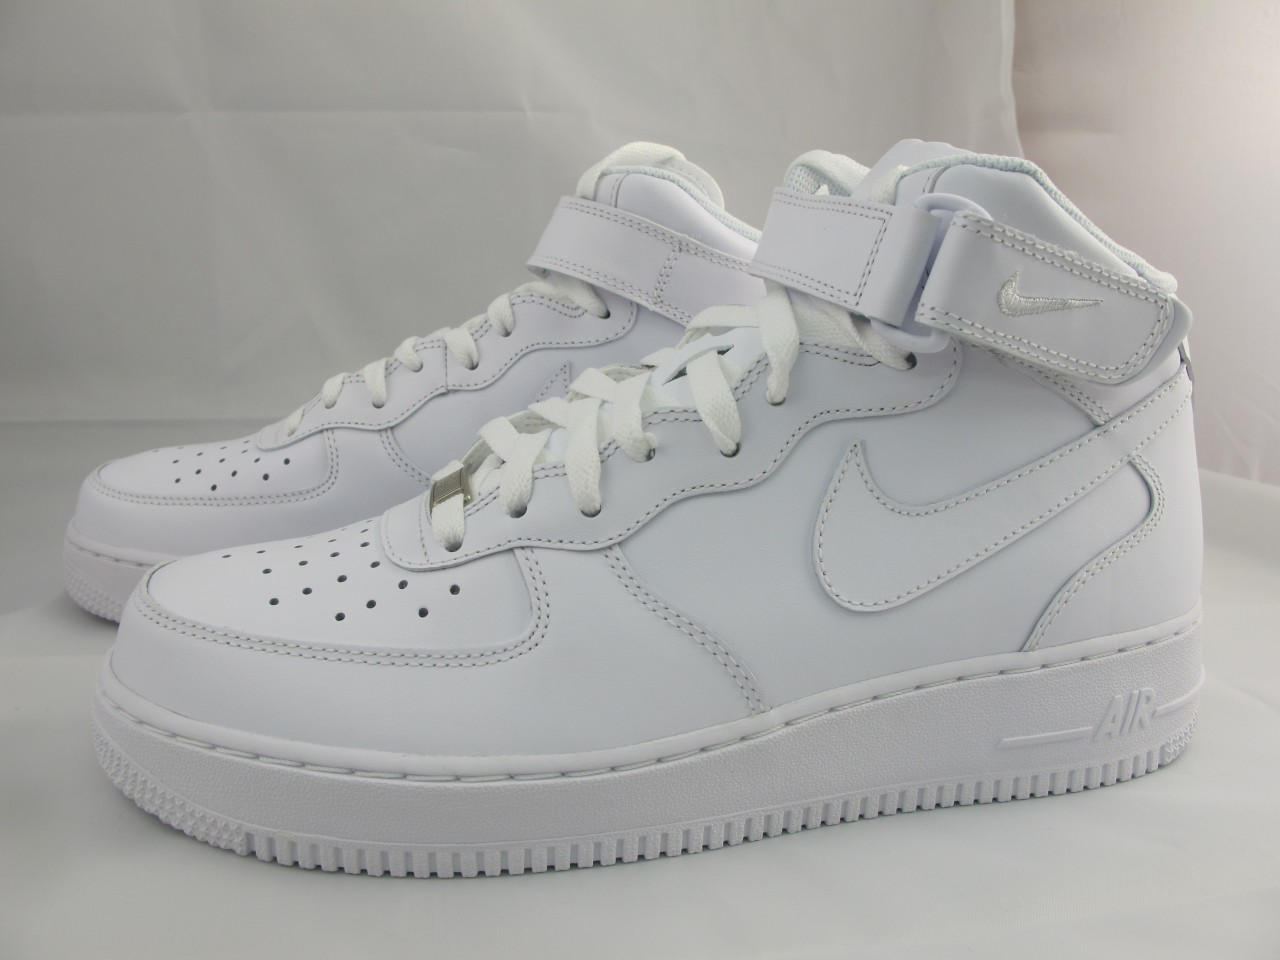 NEW-MENS-NIKE-AIR-FORCE-1-MID-07-315123-111-WHITE